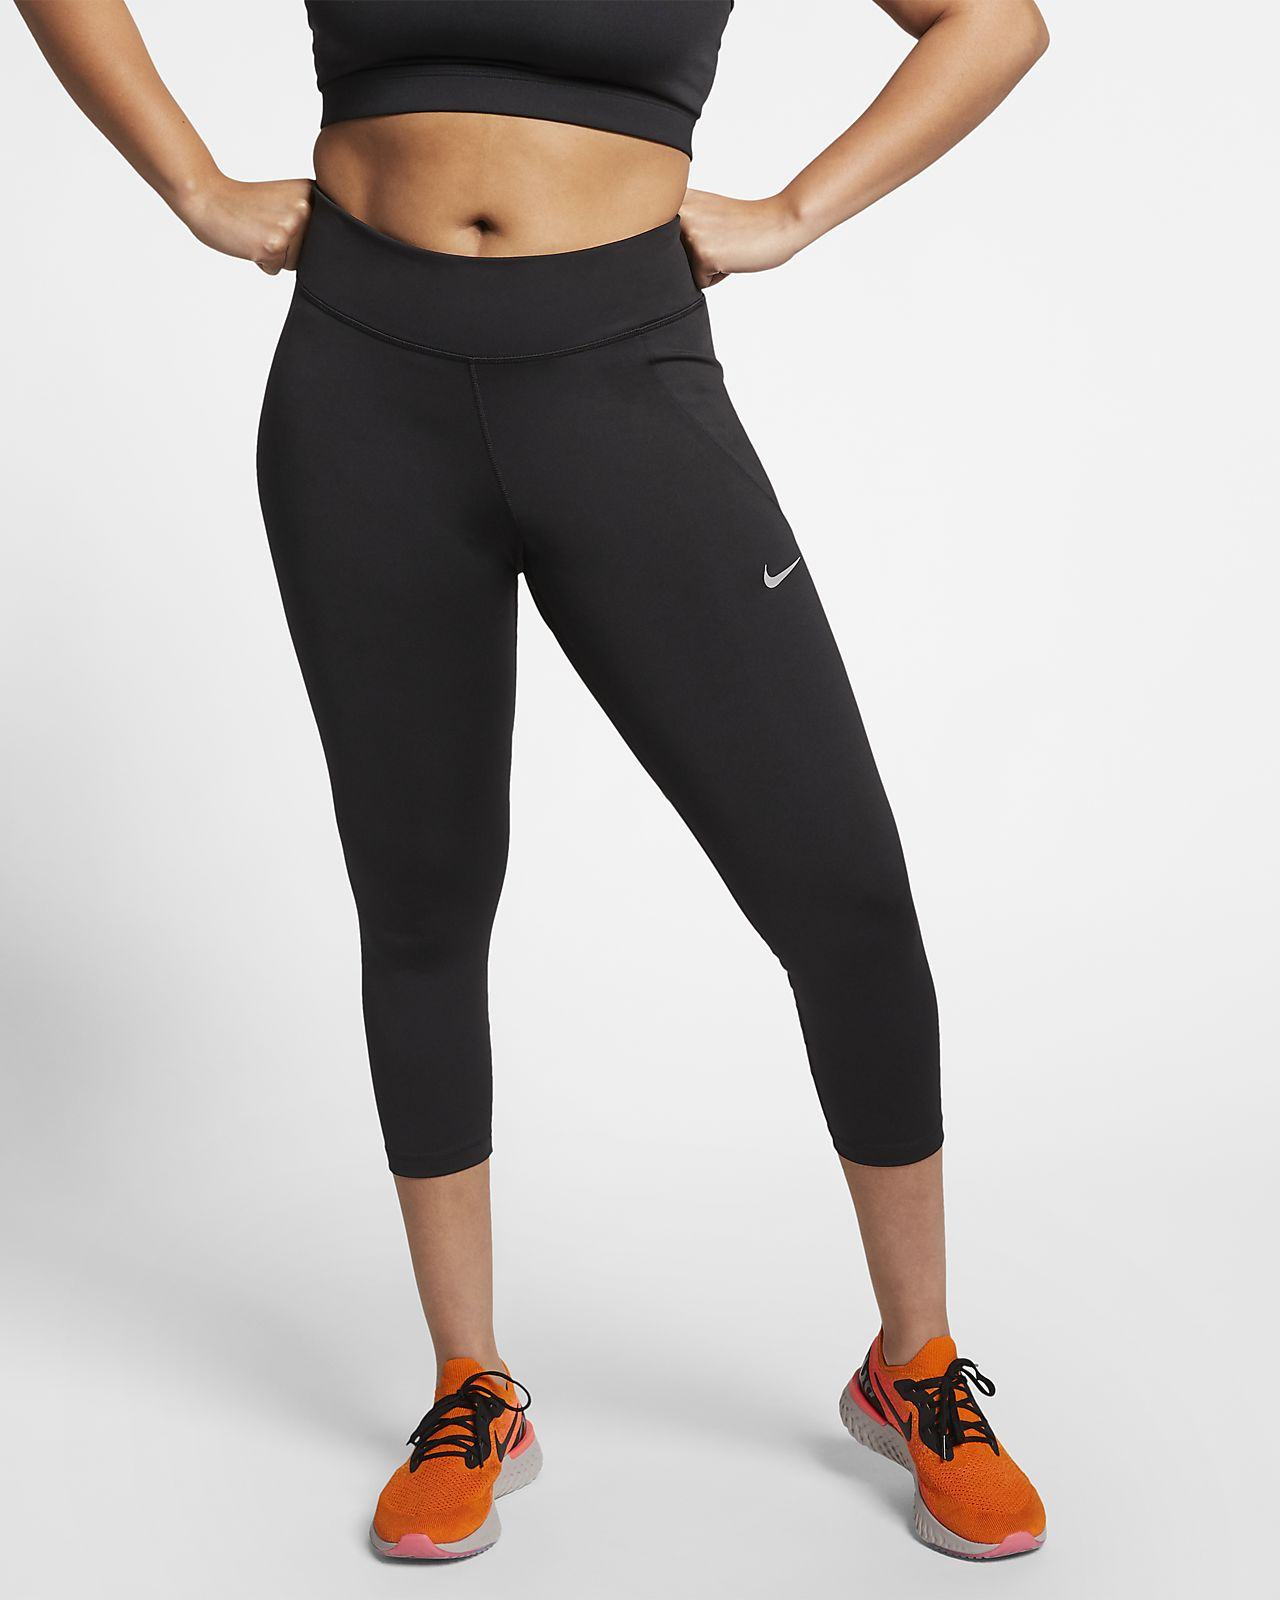 Nike Fast Women's 3/4 Running Crops (Plus Size)